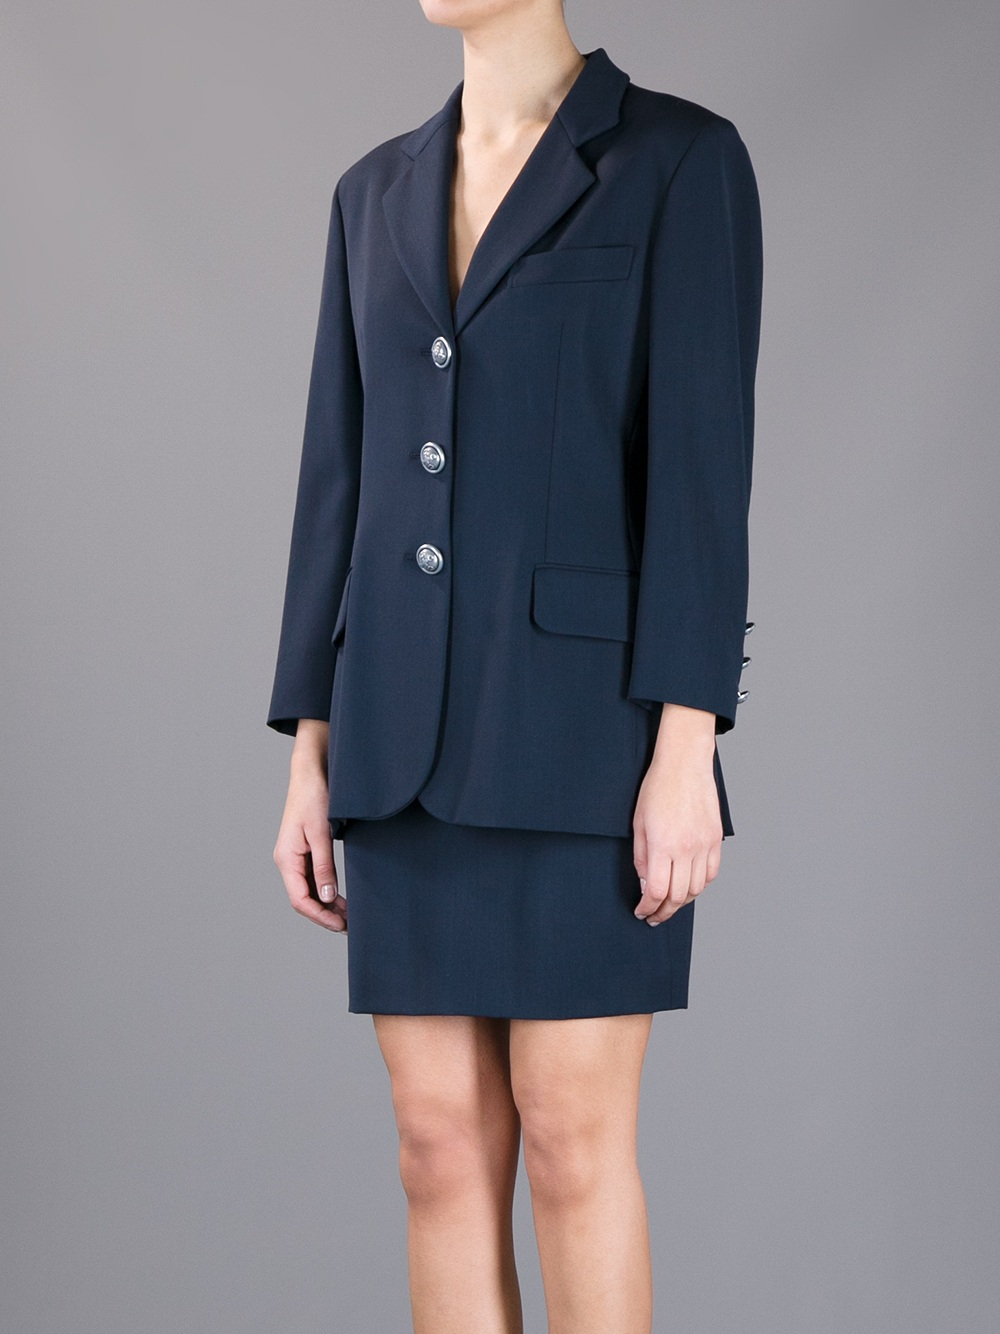 Lyst - Moschino Jacket And Skirt Suit Set in Black